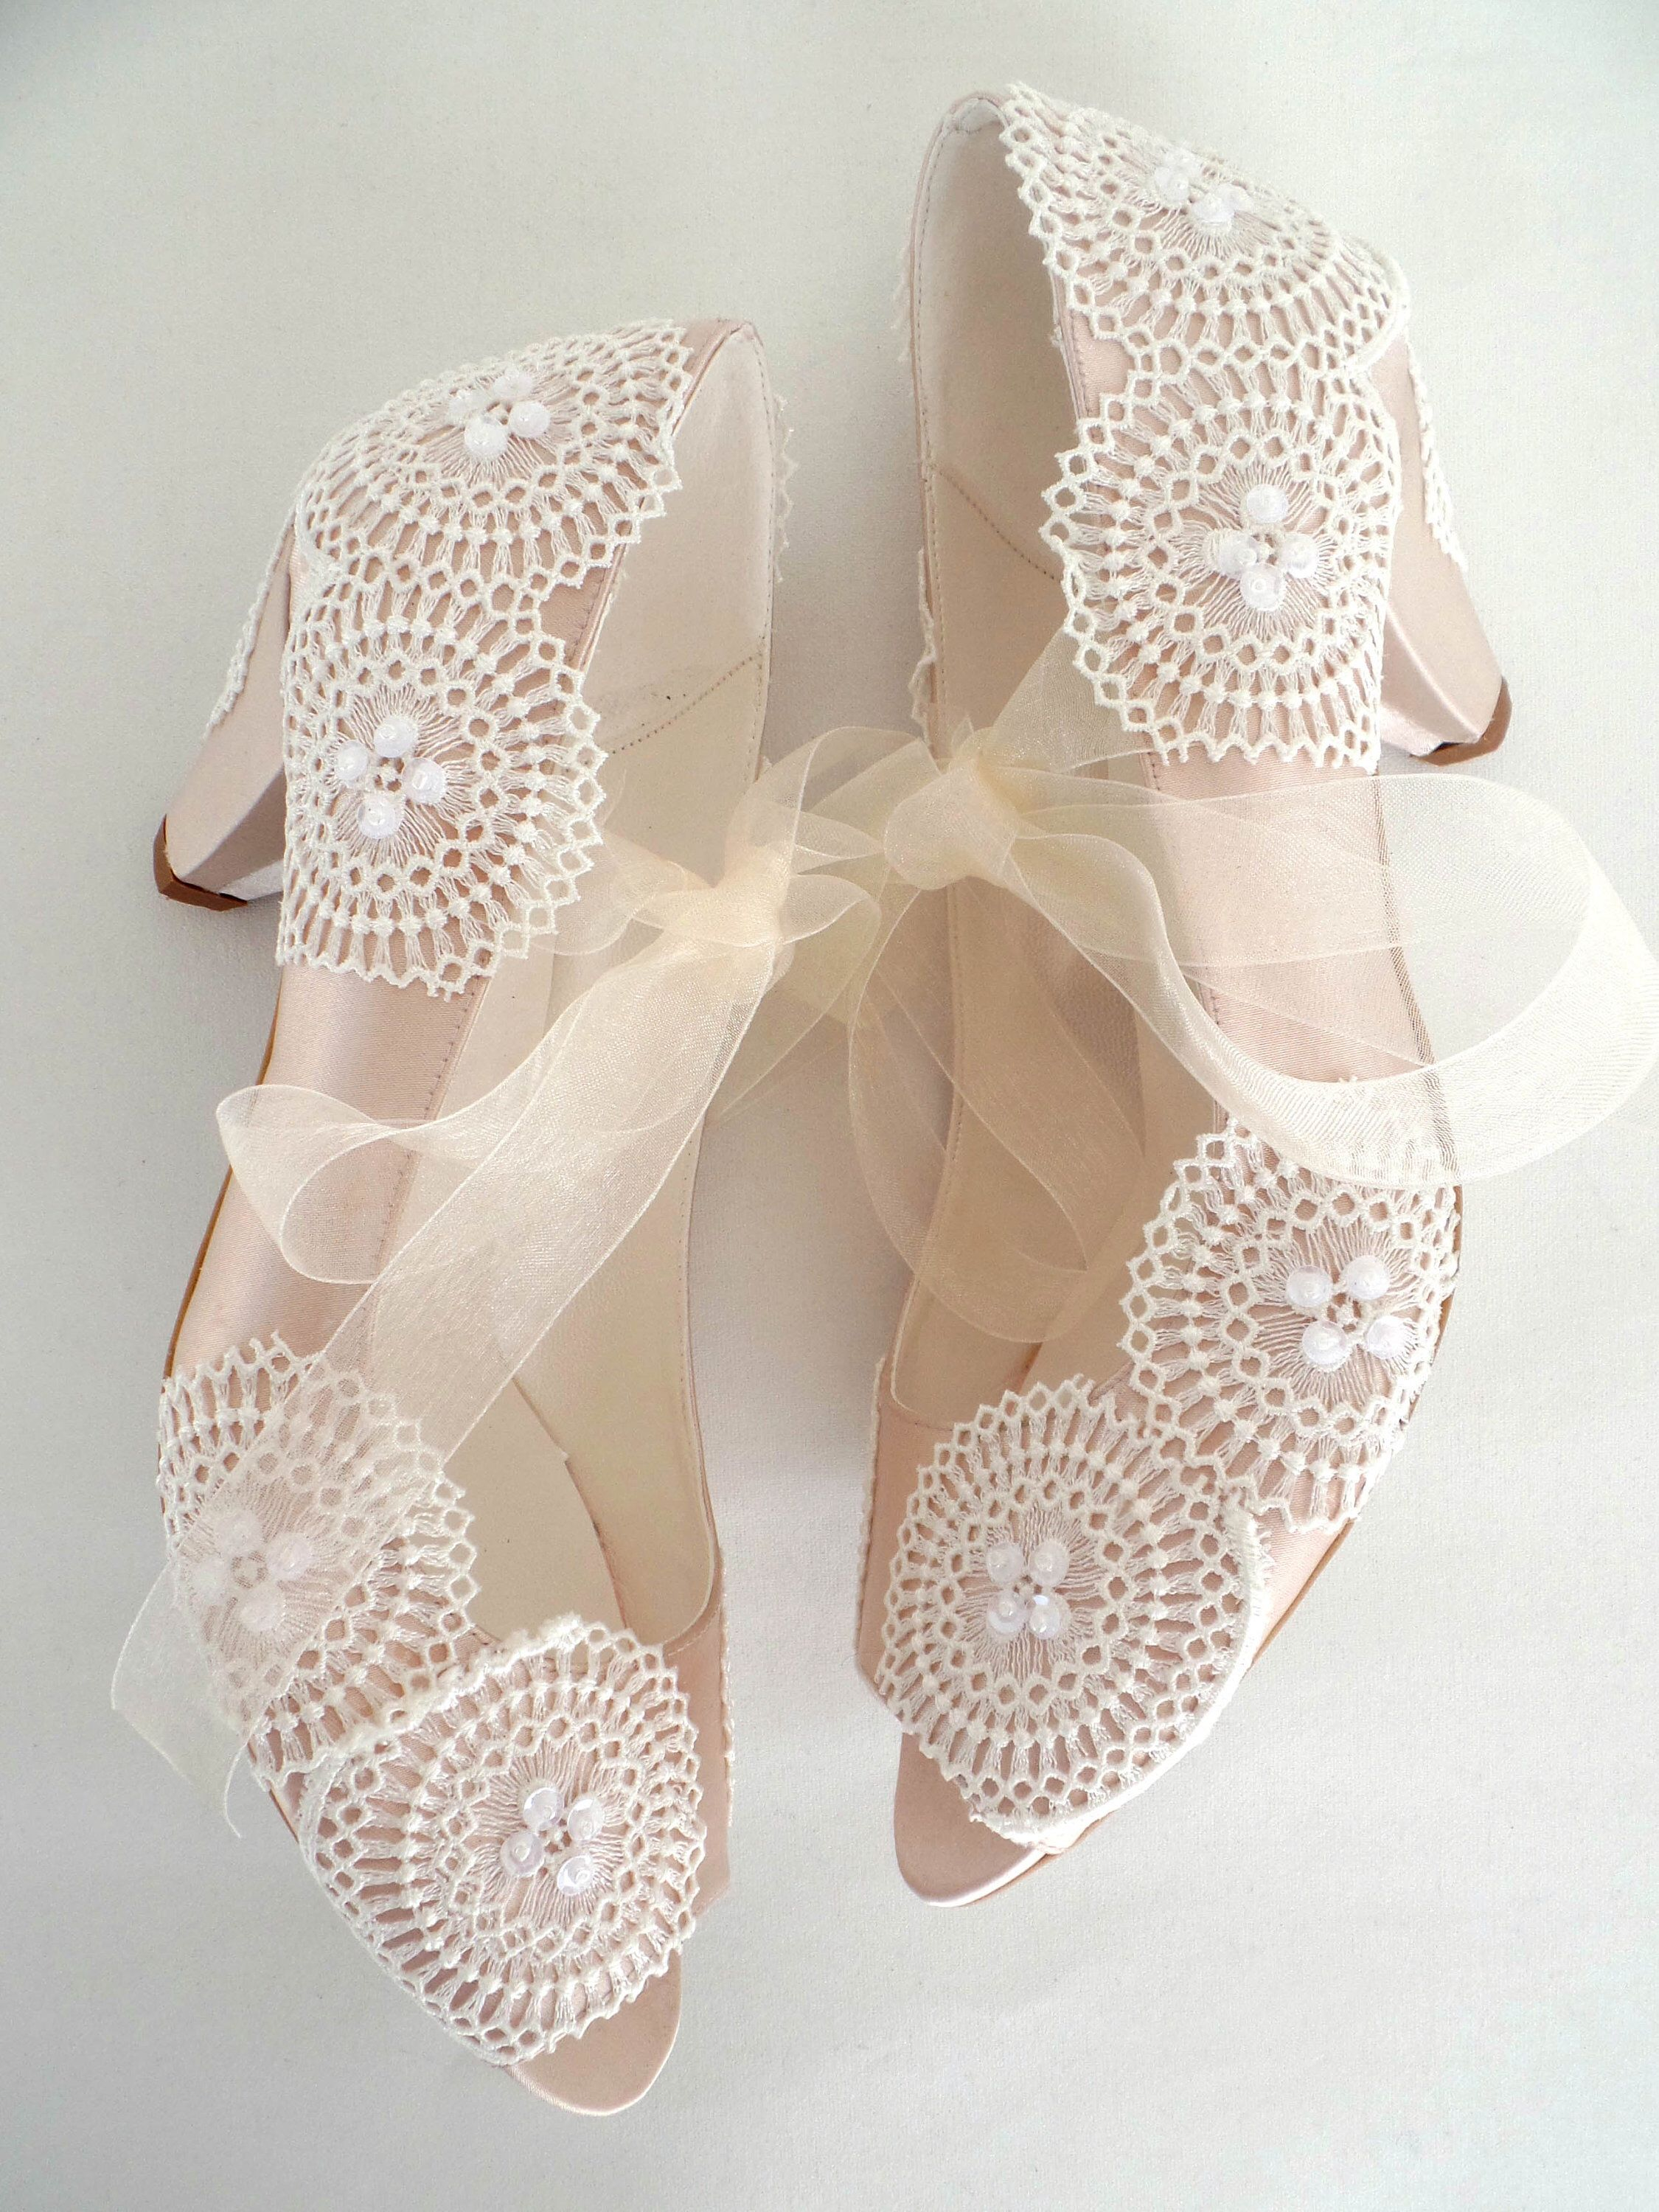 Low Heel Boho Wedding Shoes Champagne Satin Ivory Lace Etsy Wedding Shoes Lace Boho Wedding Shoes Wedding Shoes